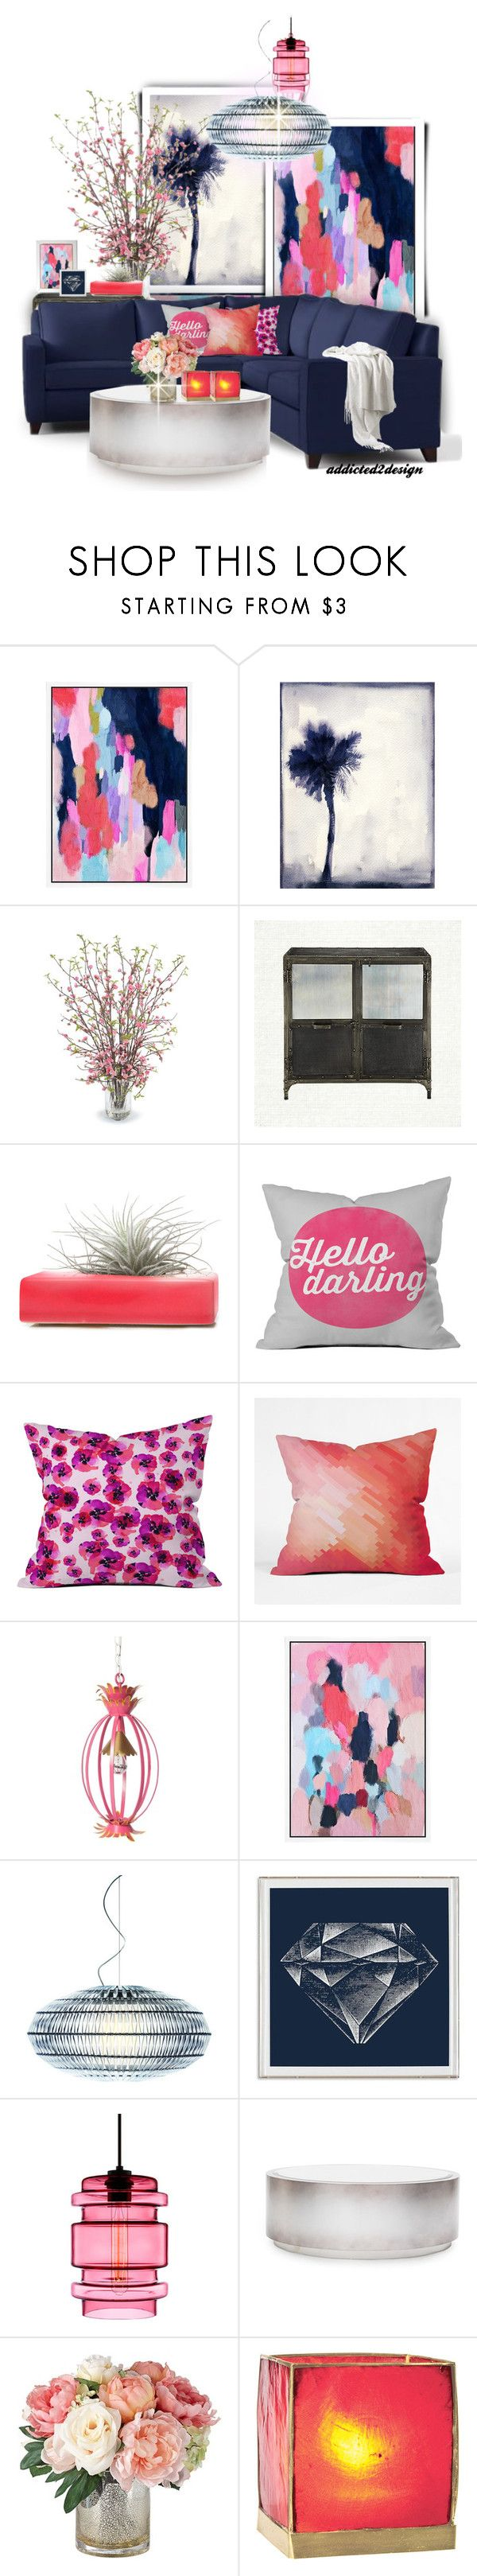 """""""Scandalous.. Thursday Night..Waiting for Scandal 2 Return"""" by addicted2design on Polyvore featuring interior, interiors, interior design, home, home decor, interior decorating, Universal Lighting and Decor, Leftbank Art, New Growth Designs and Dot & Bo"""